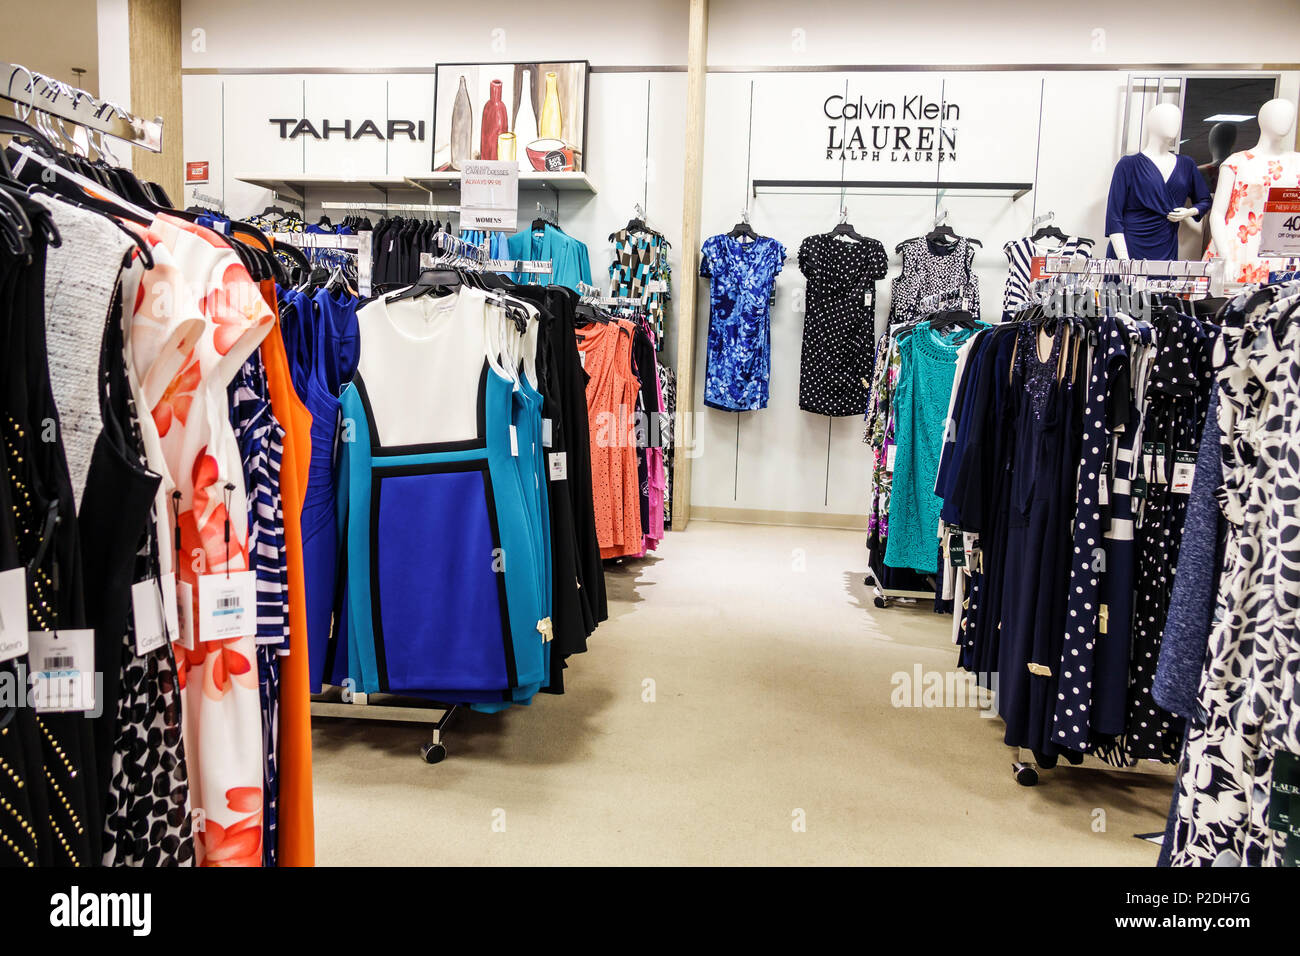 63bd844240072 Florida Jensen Beach Macy s Department Store inside shopping women s  clothing dresses Calvin Klein Lauren Tahari designer